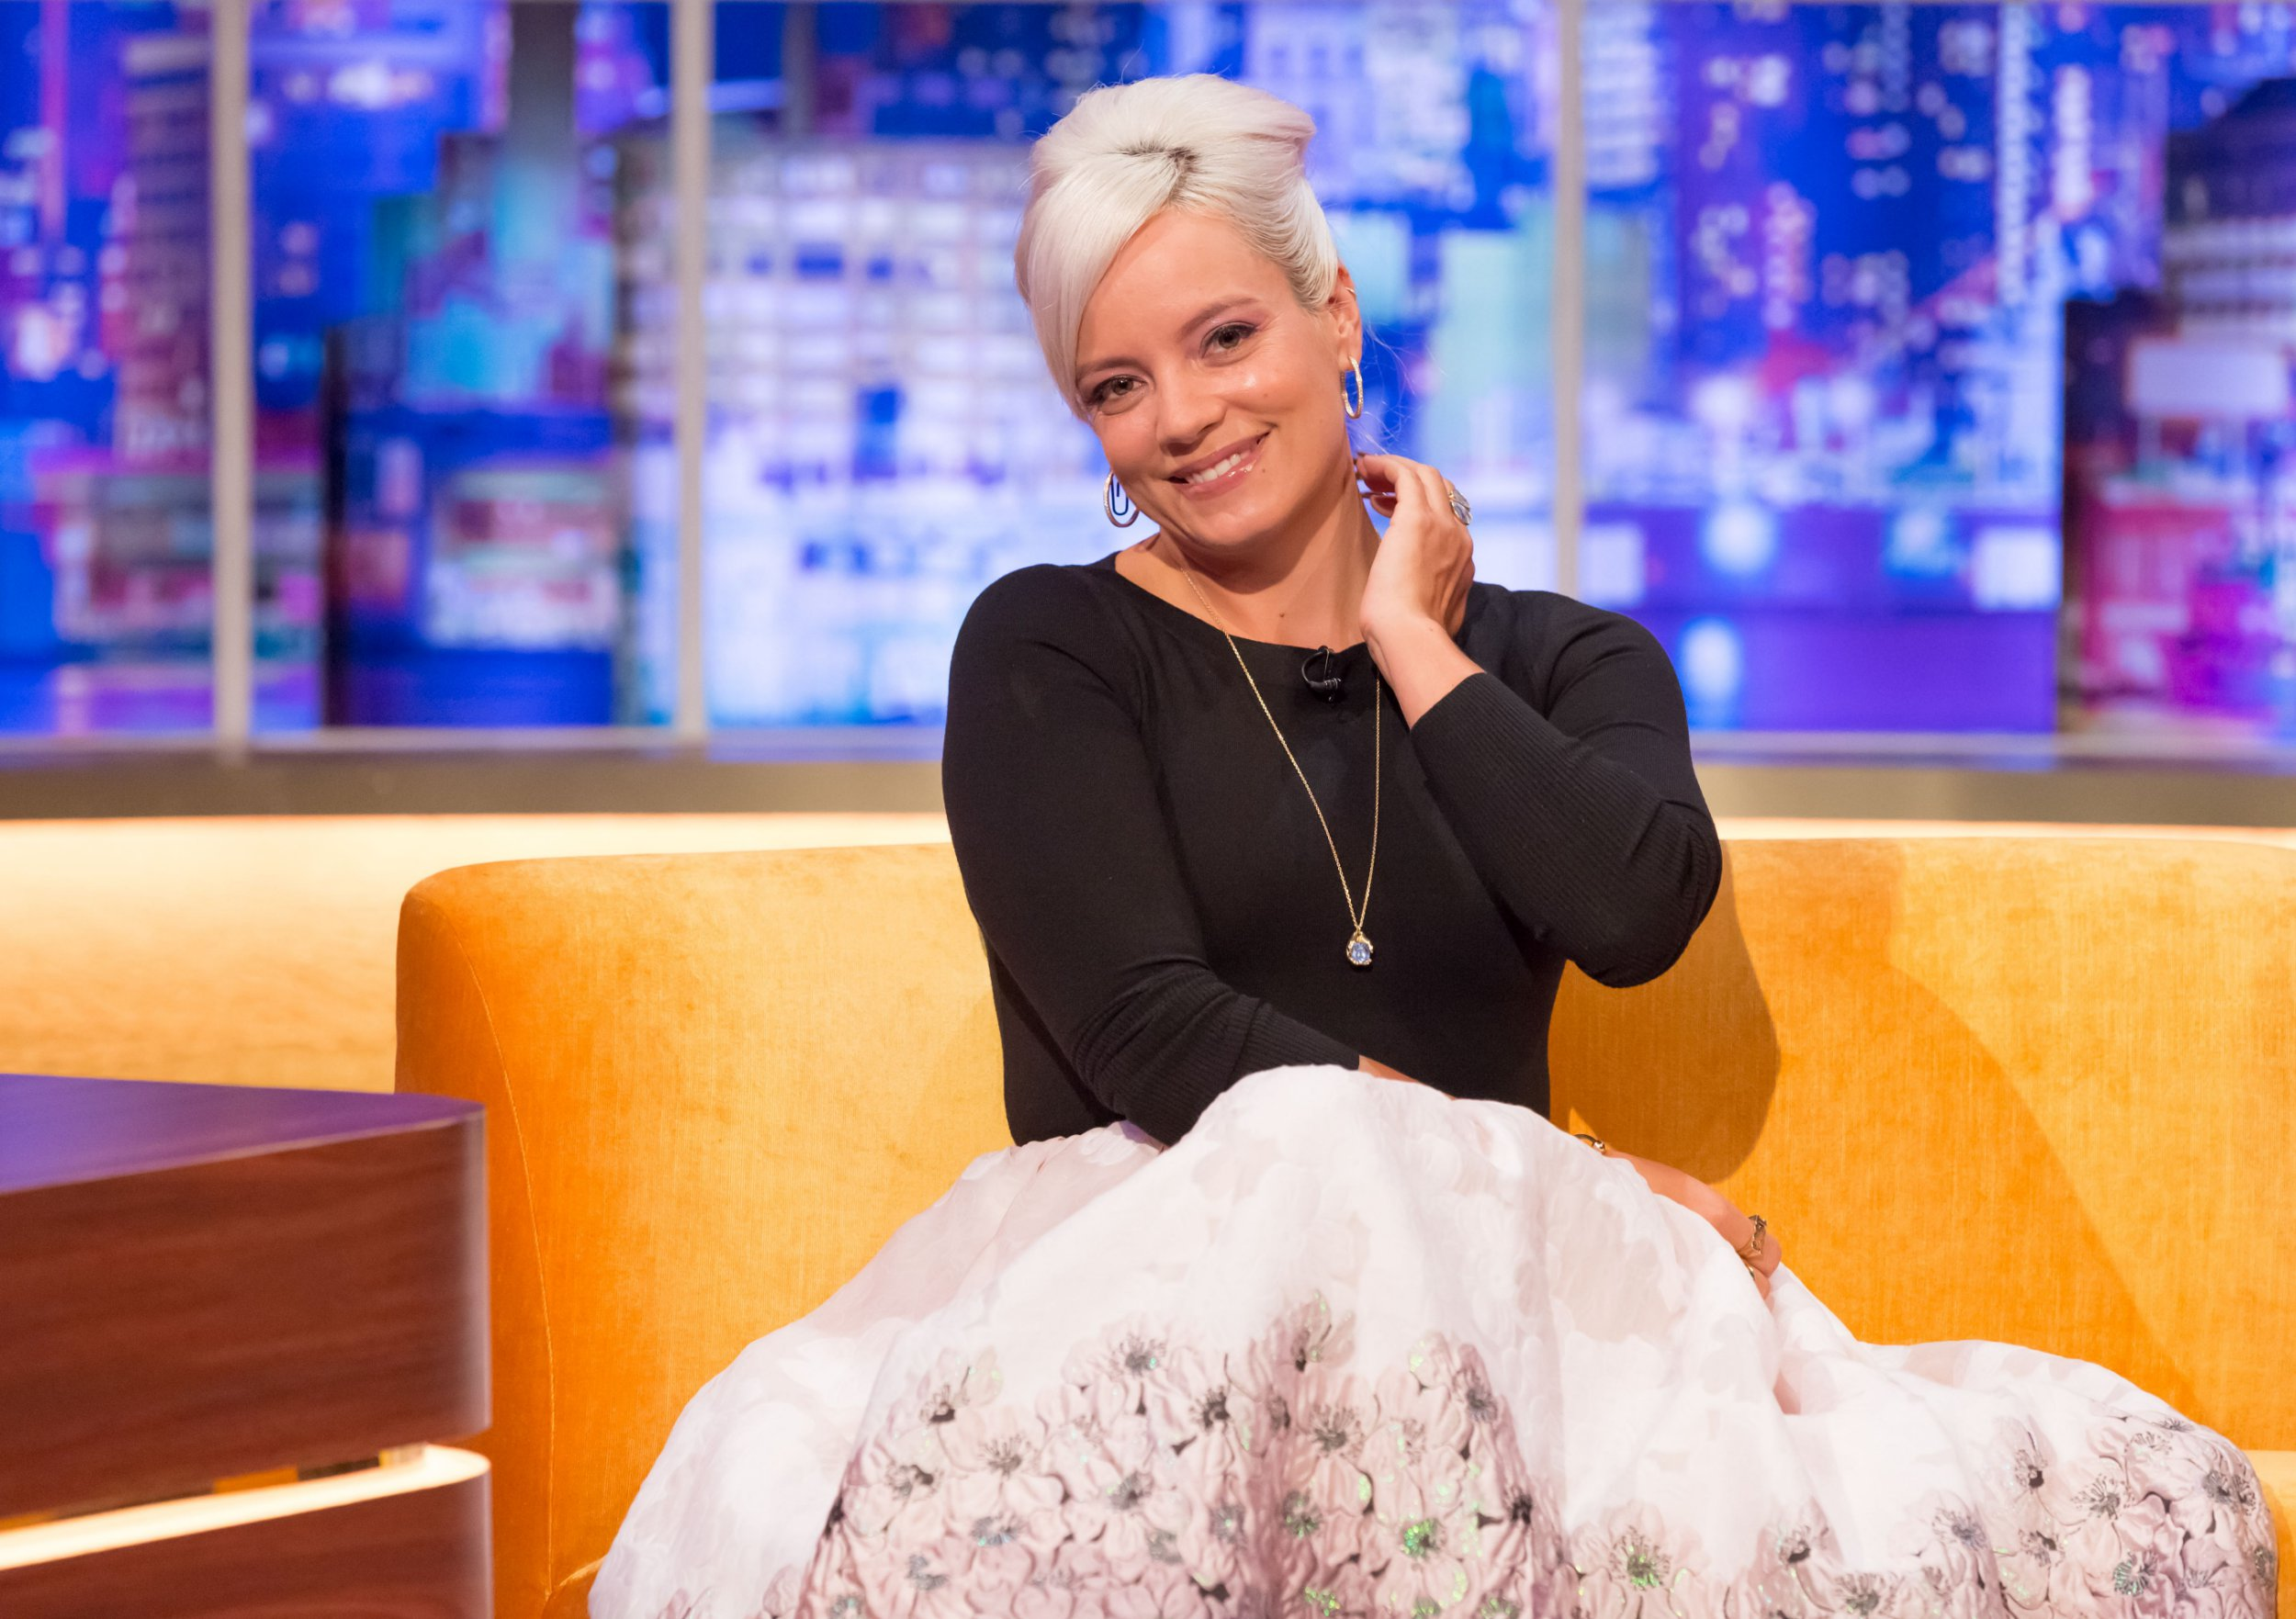 Mandatory Credit: Brian J Ritchie/Hotsauce Editorial Use Only. No Merchandising - STRICTLY EMBARGOED UNTIL 00.01 ON FRIDAY 21ST SEPTEMBER 2018 Mandatory Credit: Photo by Brian J Ritchie/Hotsauce/REX/Shutterstock (9887610bh) Lily Allen 'The Jonathan Ross Show', TV show, Series 13, Episode 4, London, UK - 22 Sep 2018